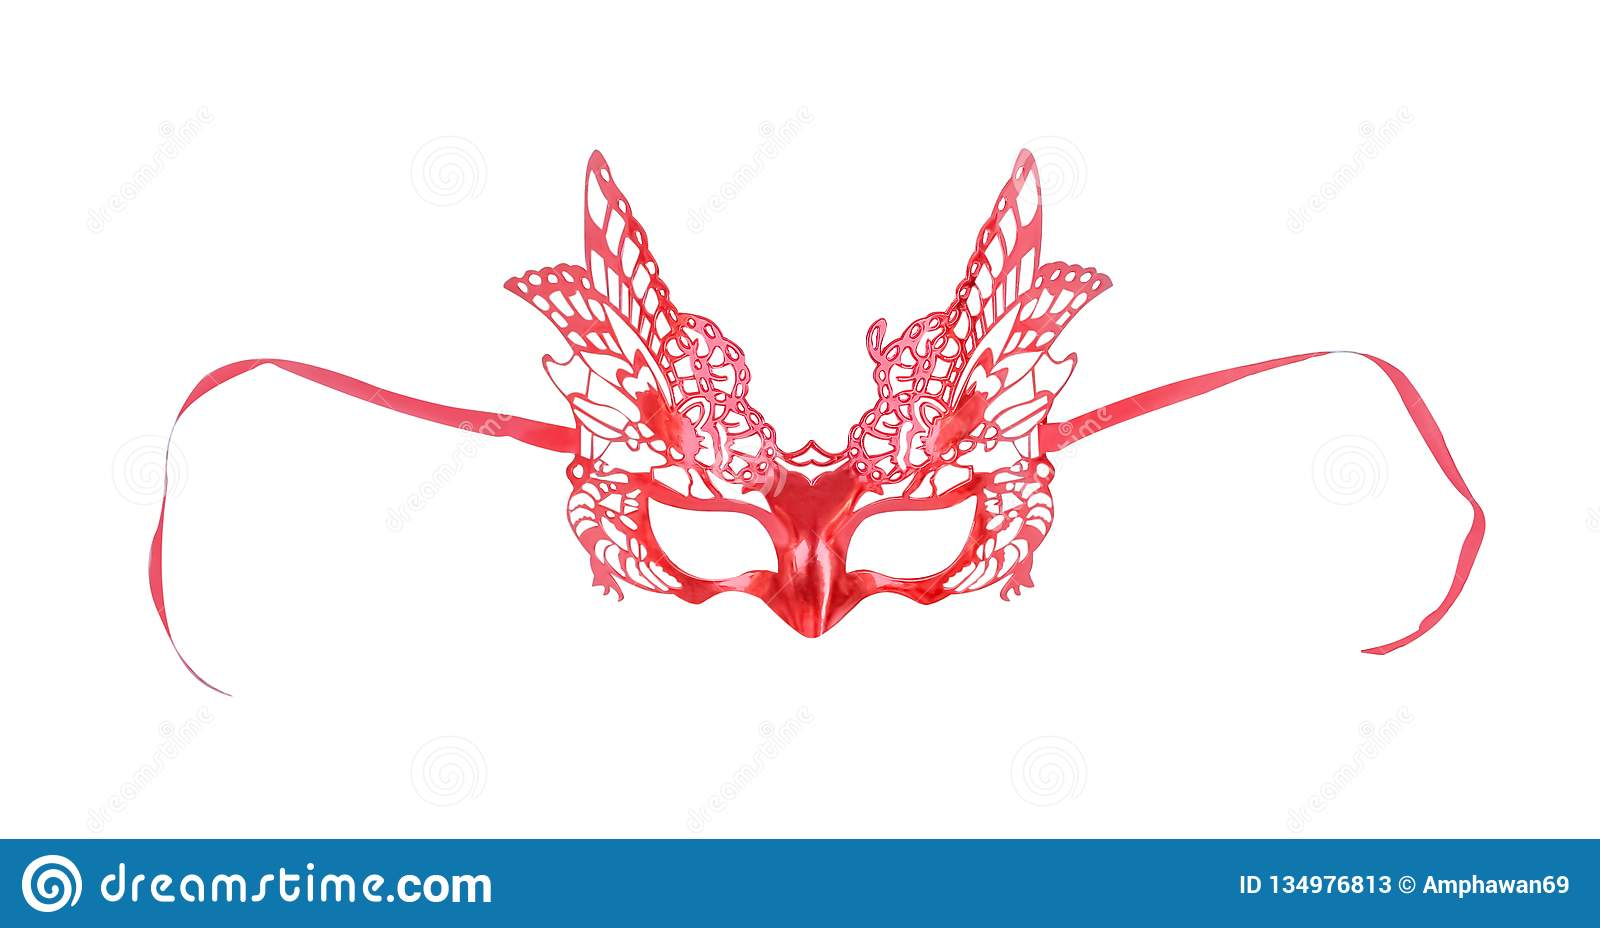 Colorful red mask with butterfly patterns isolate on white background with clipping path